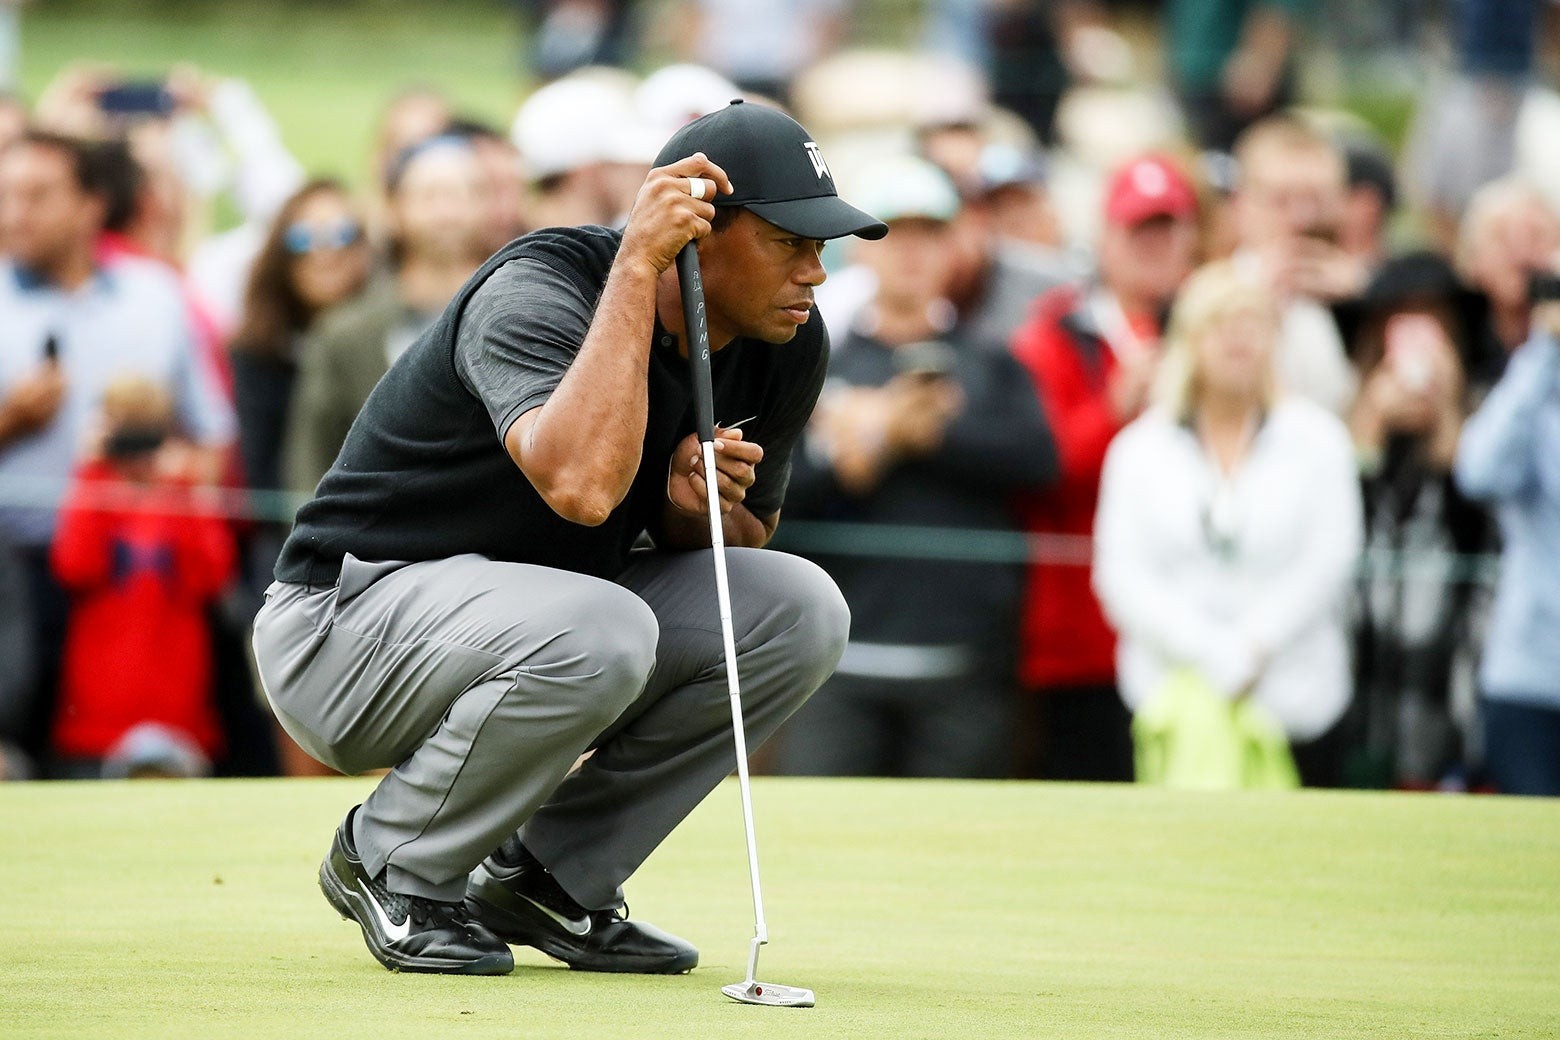 Tiger Woods lines up a putt on the 10th green during the third round of the BMW Championship.